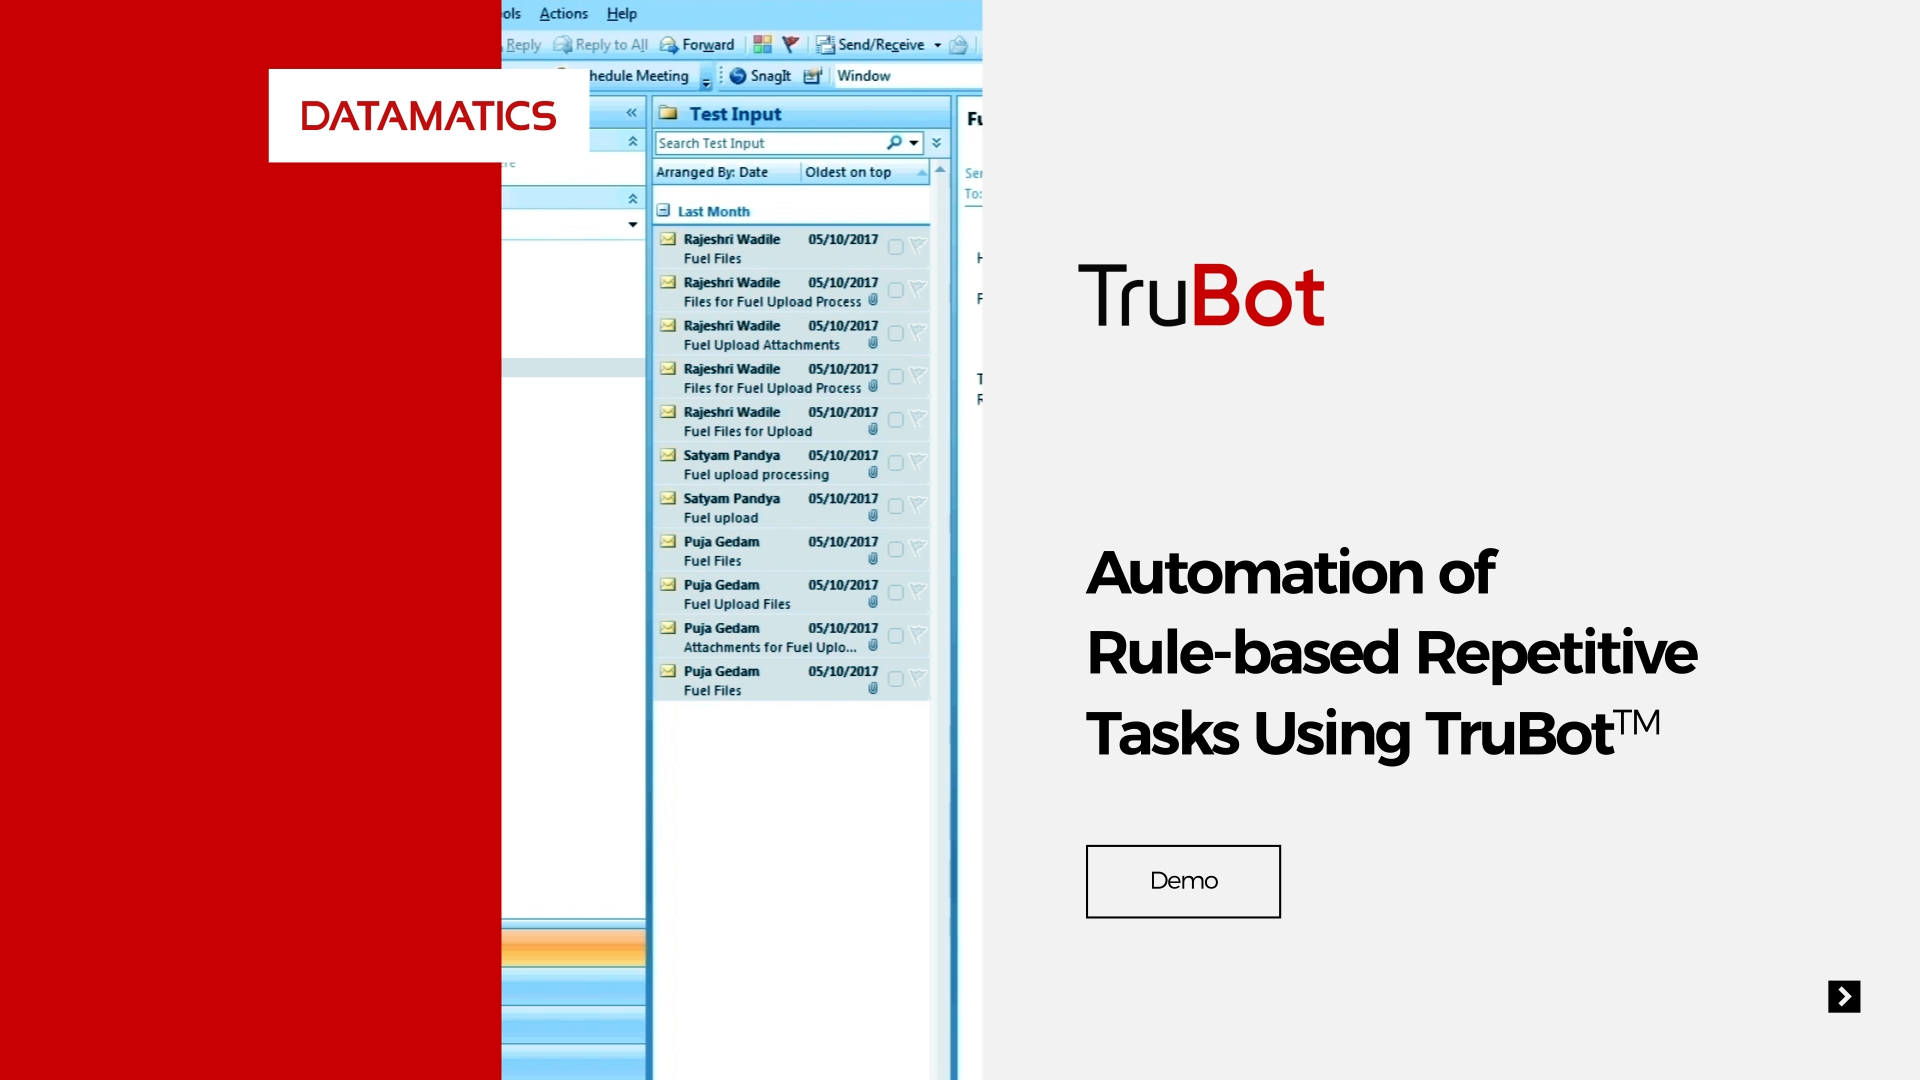 screenshot Automation of Rule-based Repetitive Tasks Using TruBot